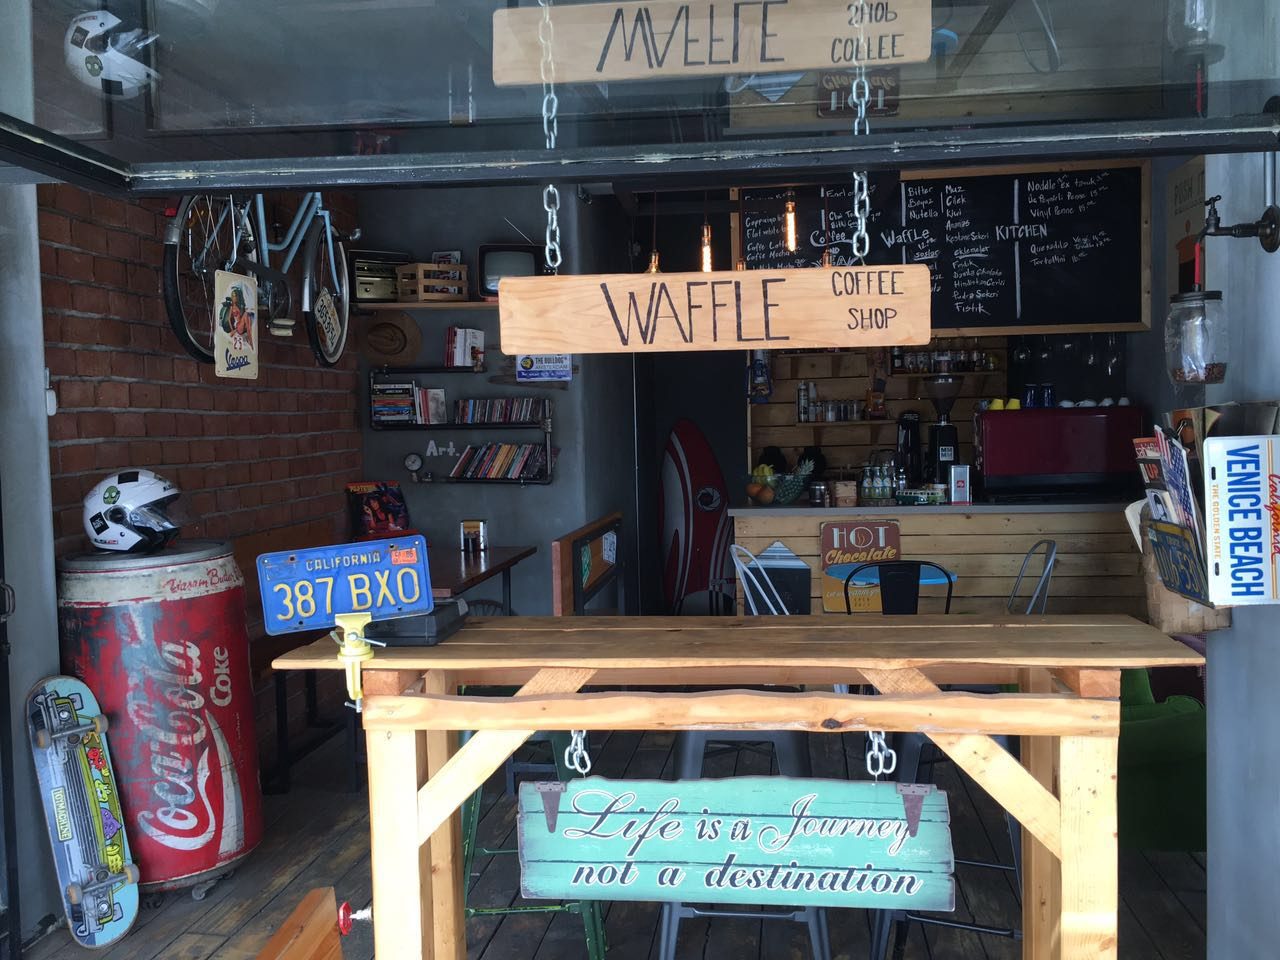 Vinly Waffle & Coffee Shop